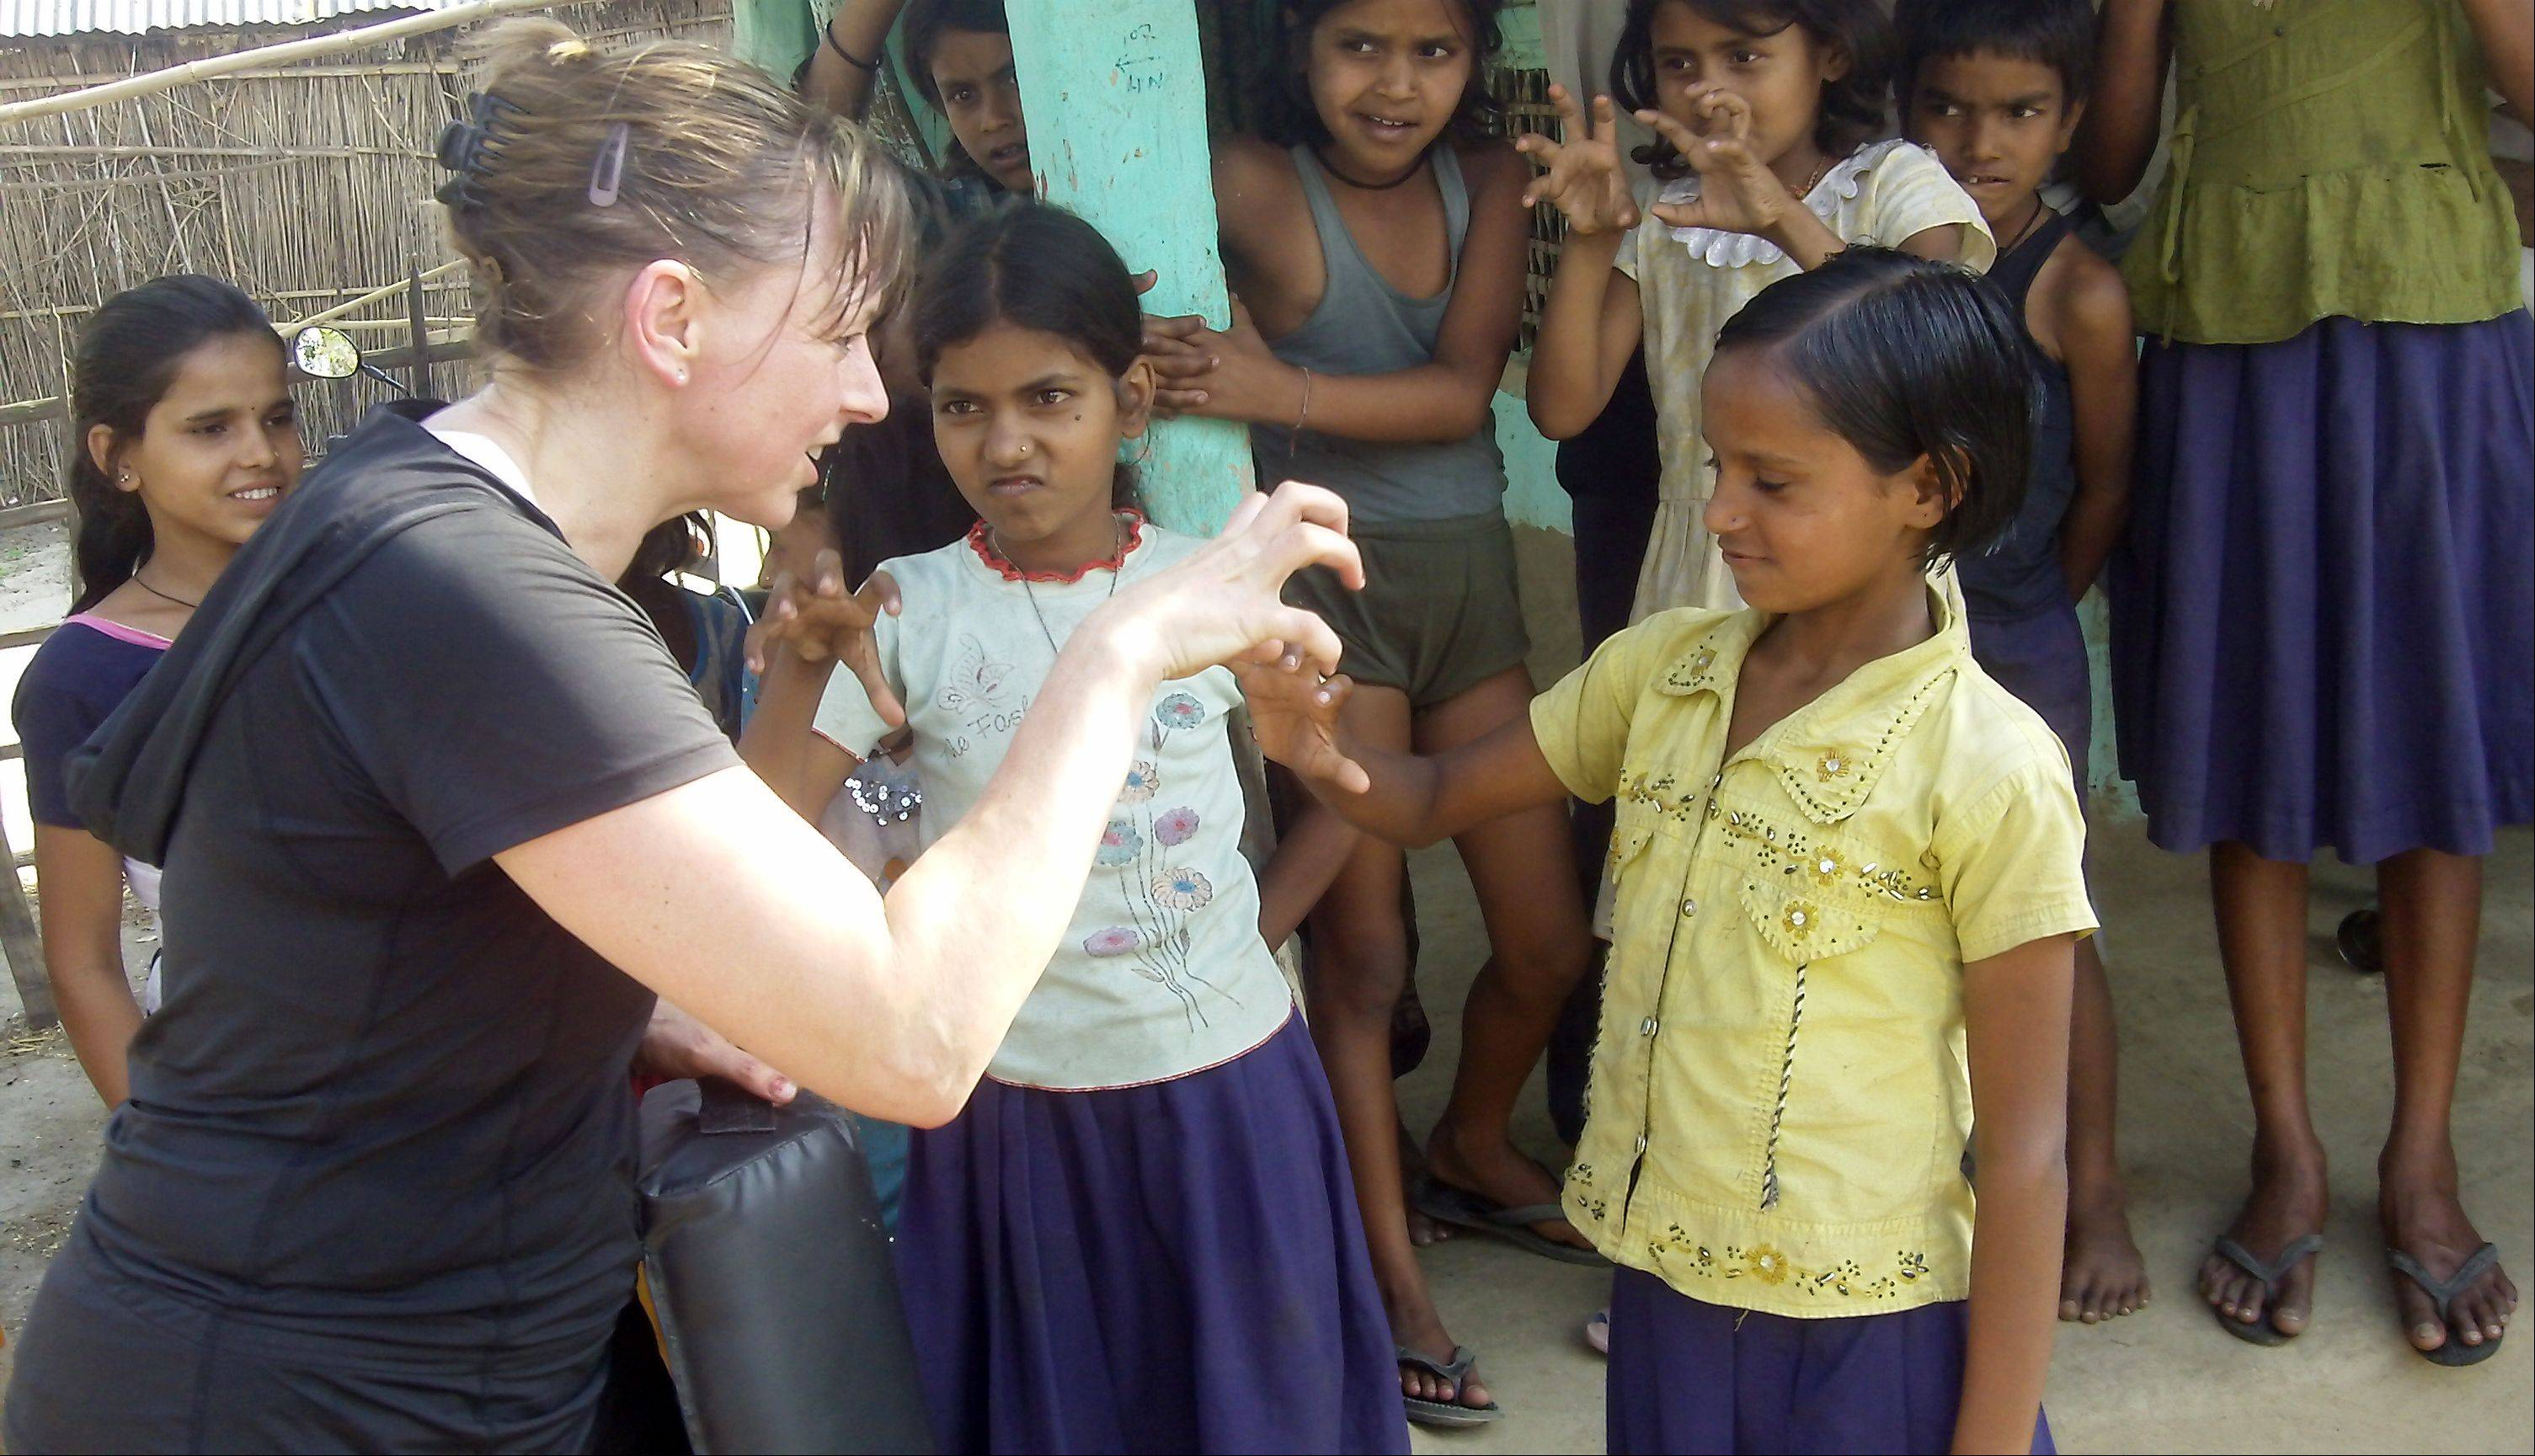 Belle Staurowsky teaches self-defense classes to girls in Babuan in the Indian state of Bihar.